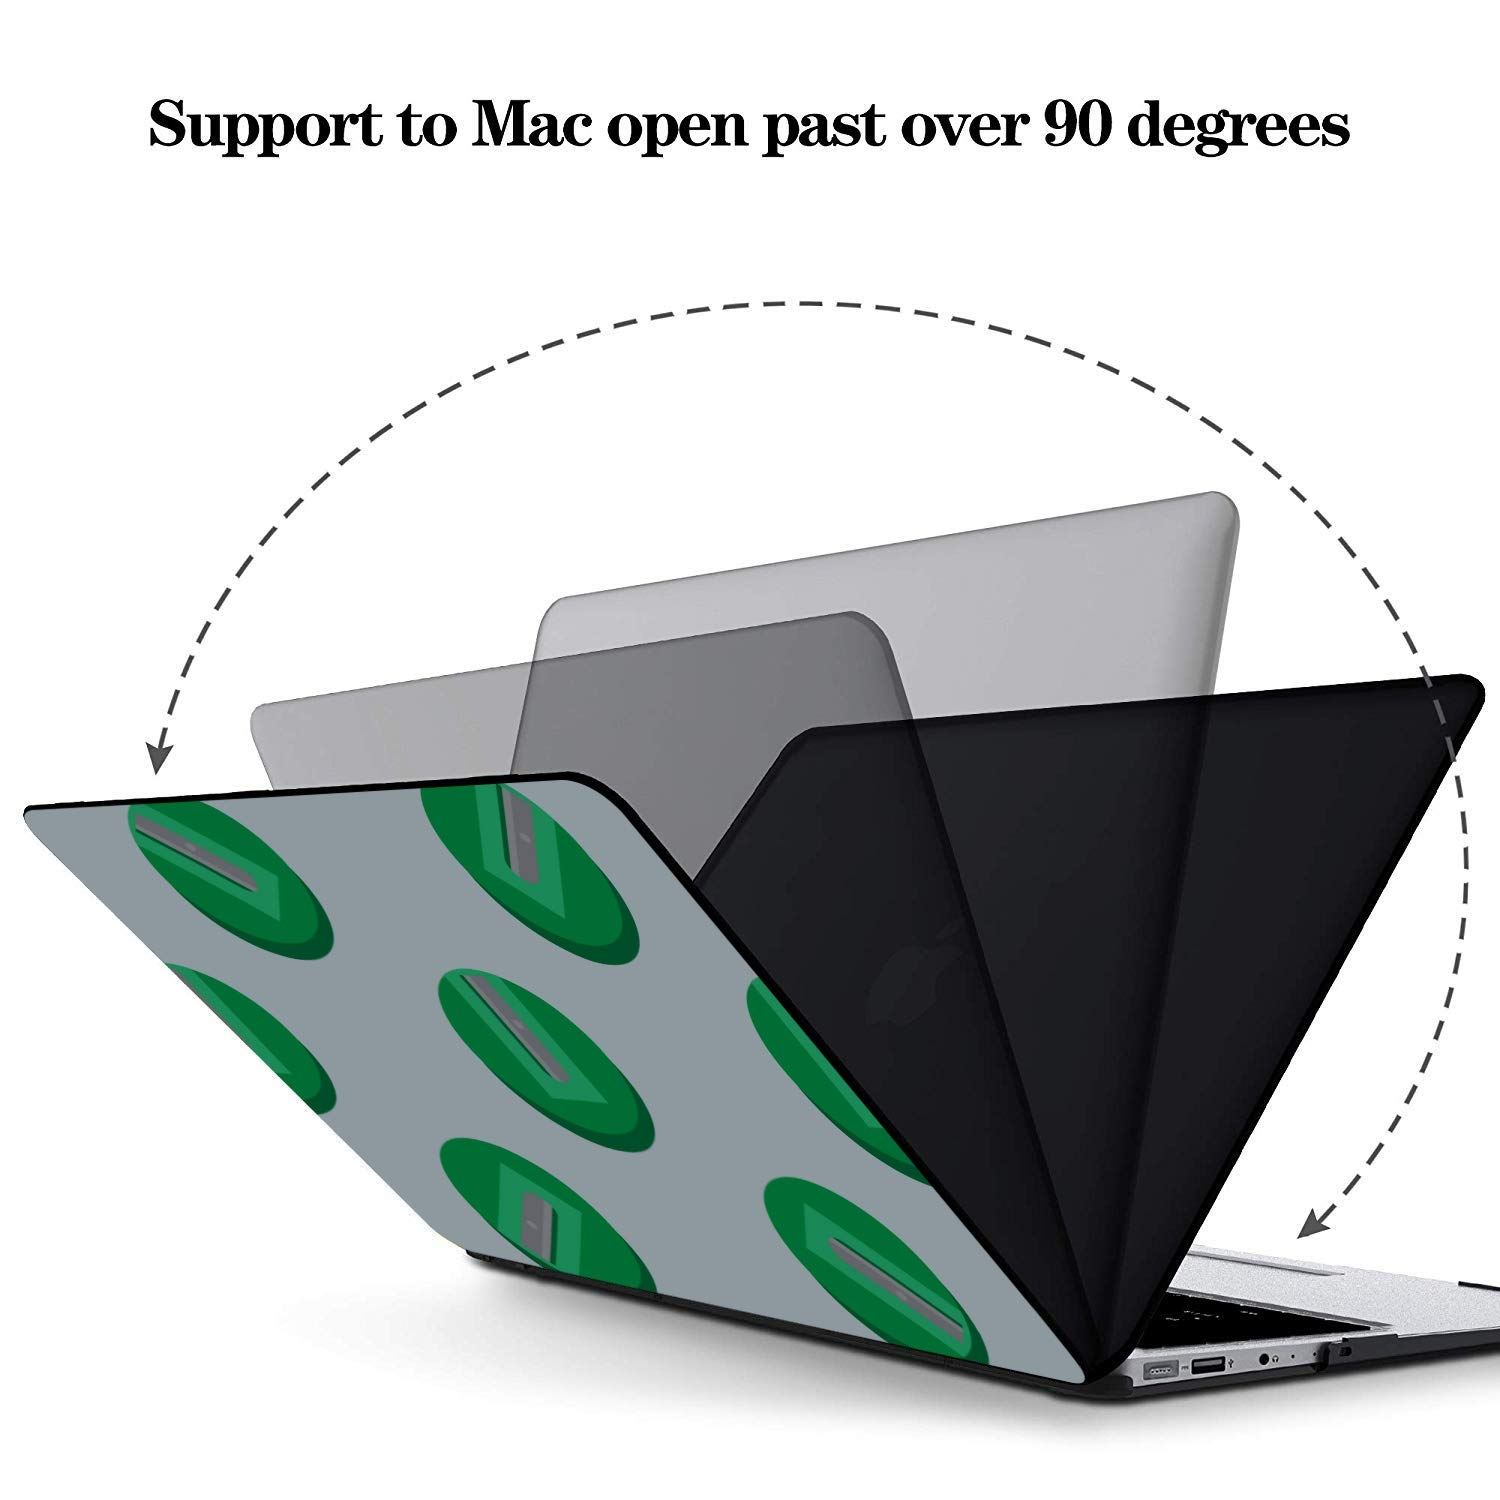 13 MacBook Air Case School Supplies Pencil Sharpener Plastic Hard Shell Compatible Mac Air 11 Pro 13 15 Laptop Shell Protection for MacBook 2016-2019 Version